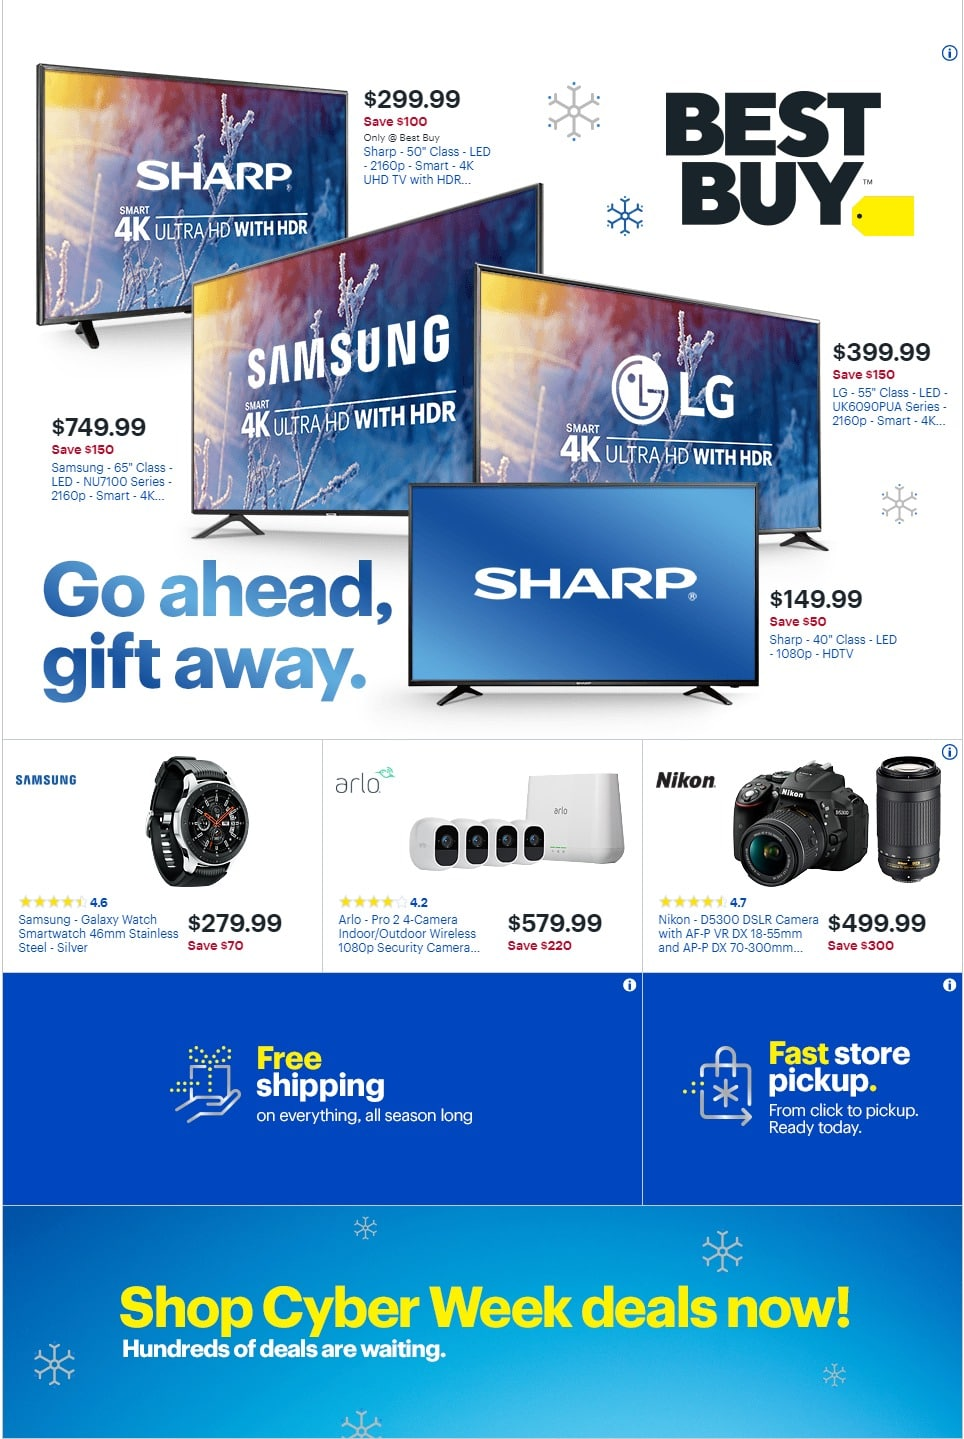 Best Buy Cyber Monday 2018 Ad